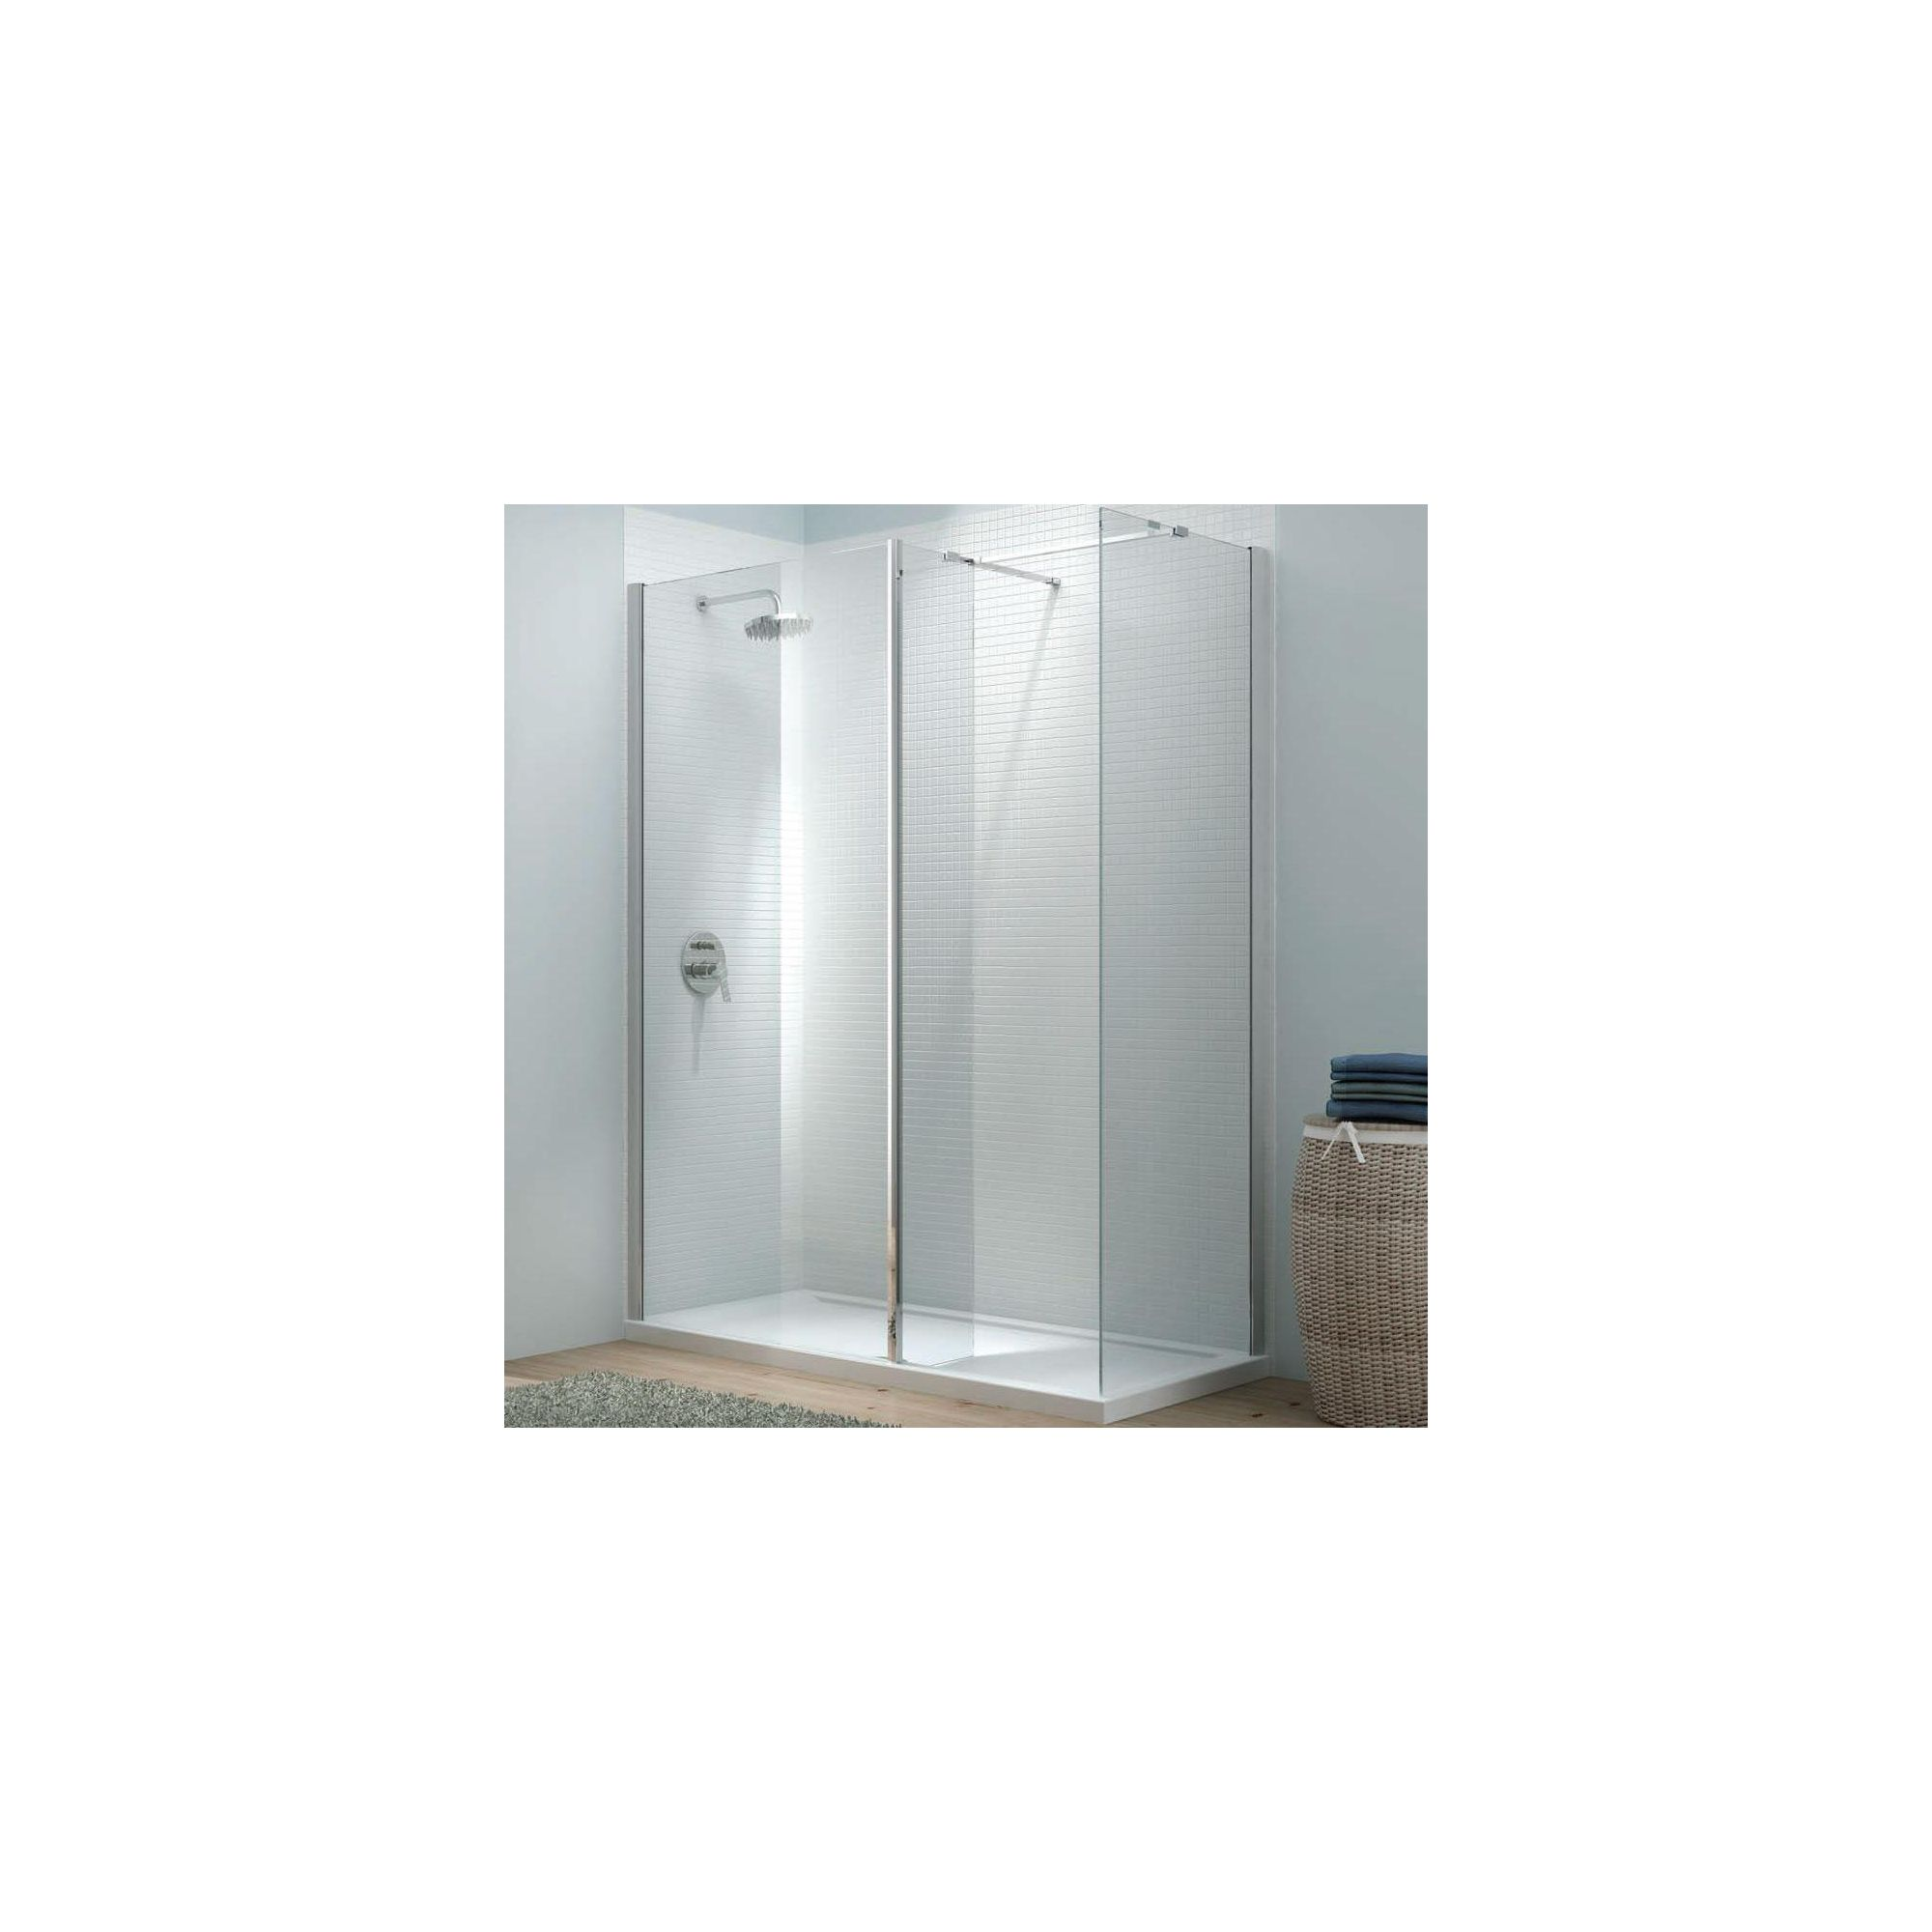 Merlyn Vivid Eight Cube Alcove Walk-In Shower Enclosure, 1600mm x 800mm, Low Profile Tray, 8mm Glass at Tesco Direct